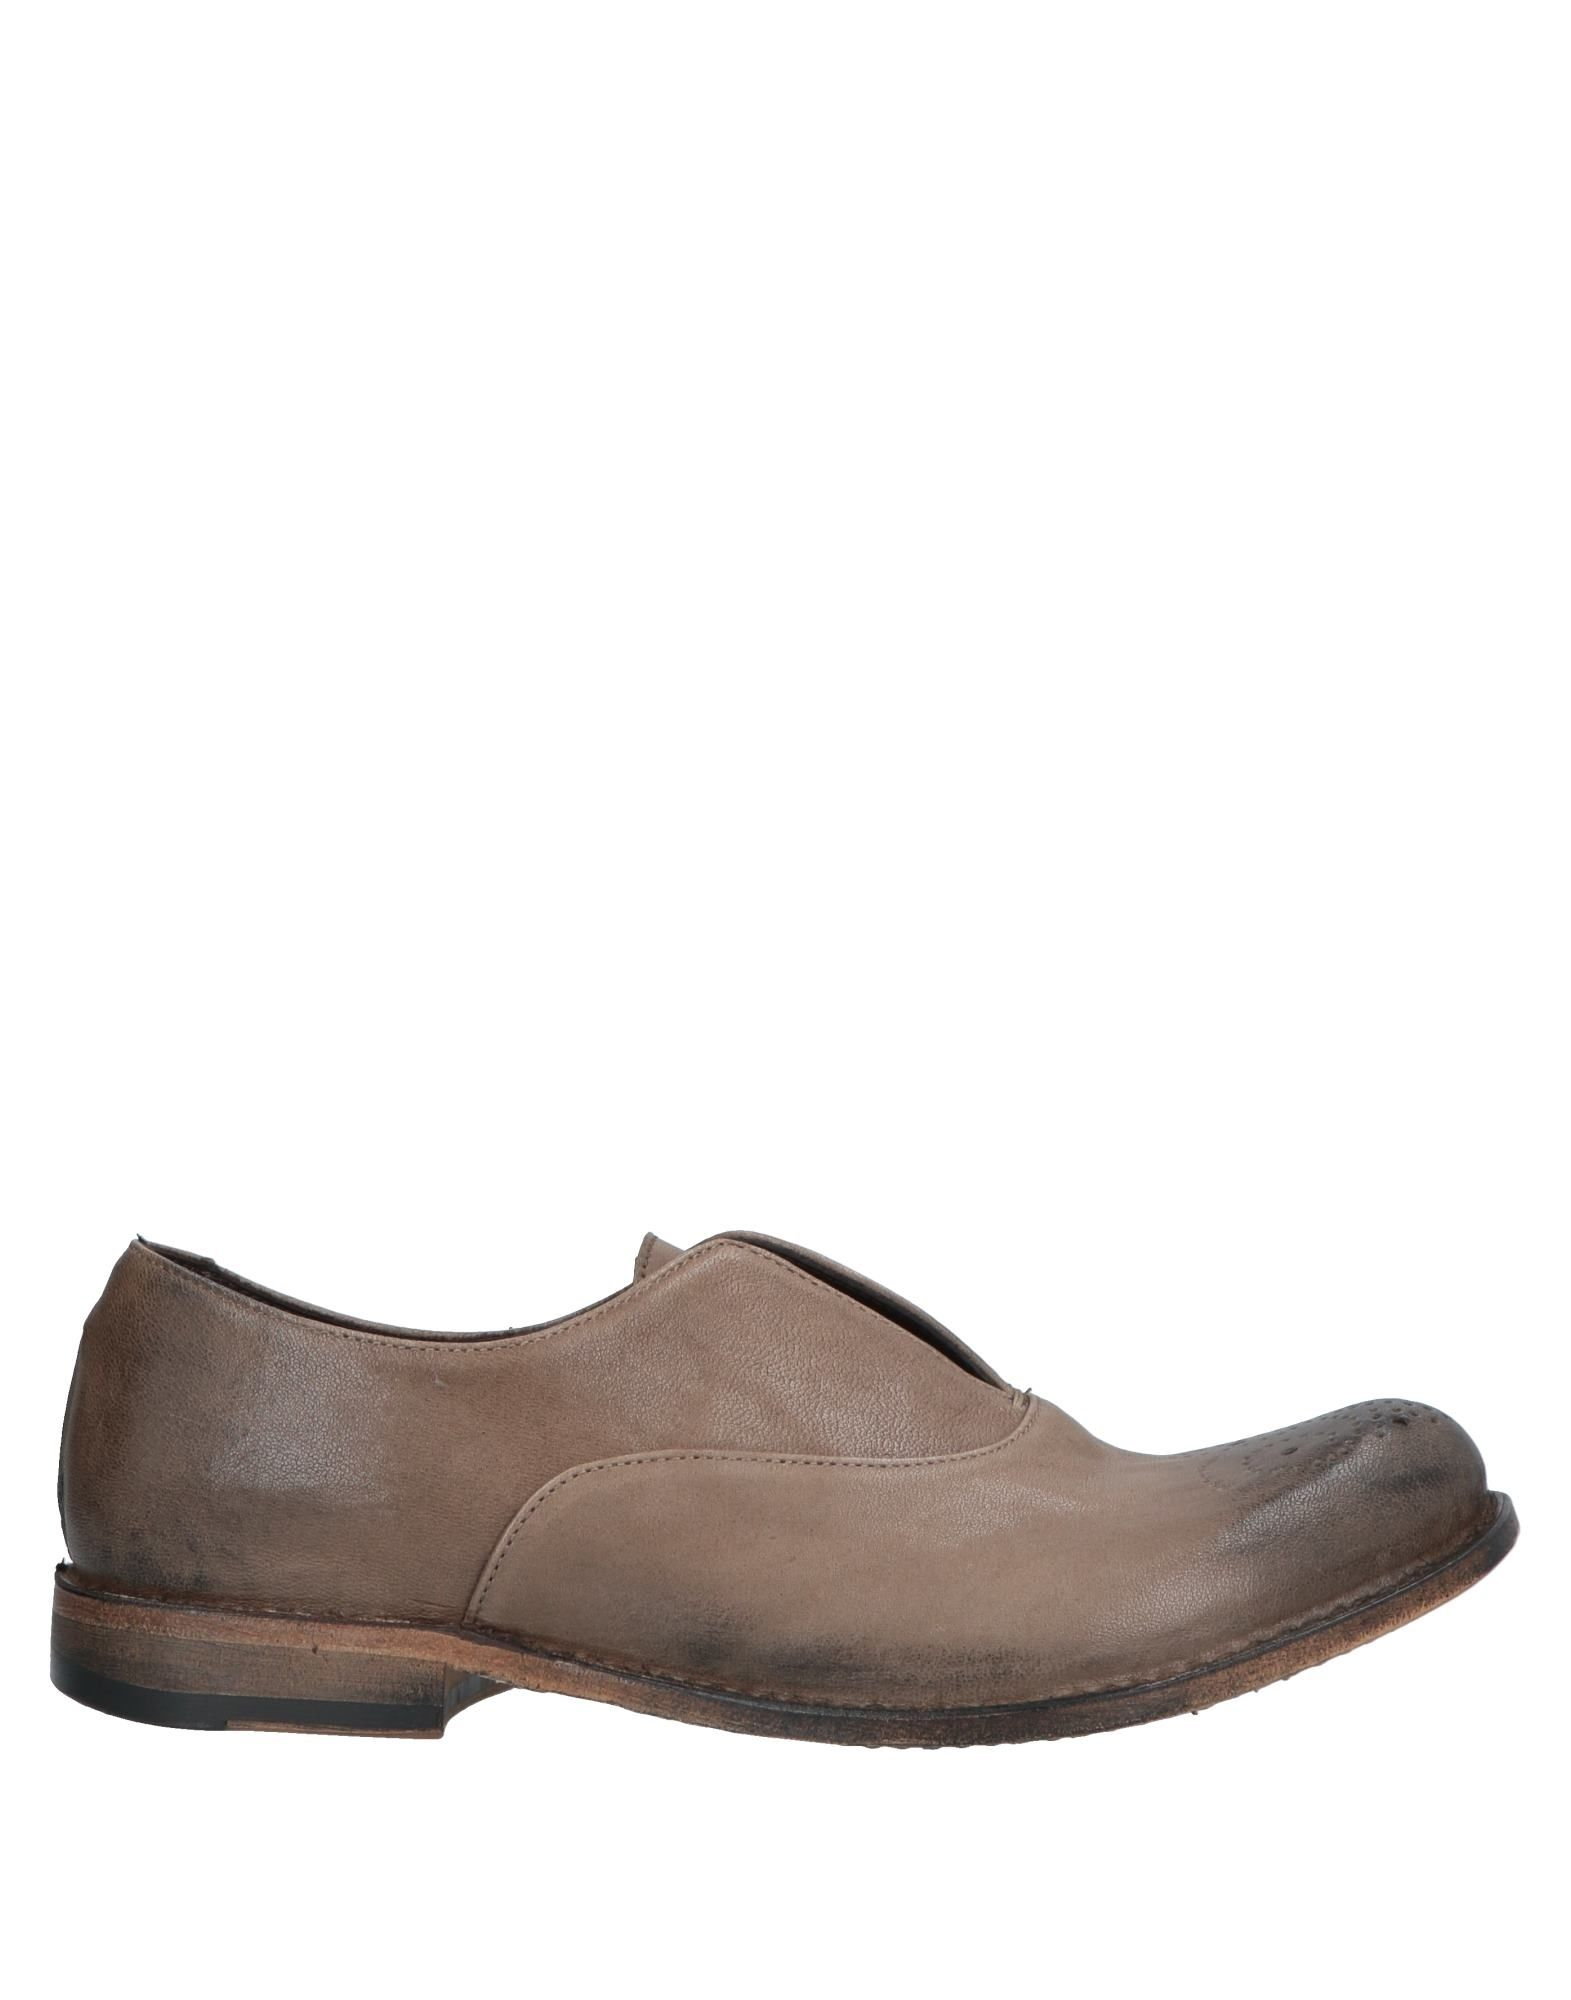 OPEN CLOSED SHOES Мокасины open closed shoes мокасины